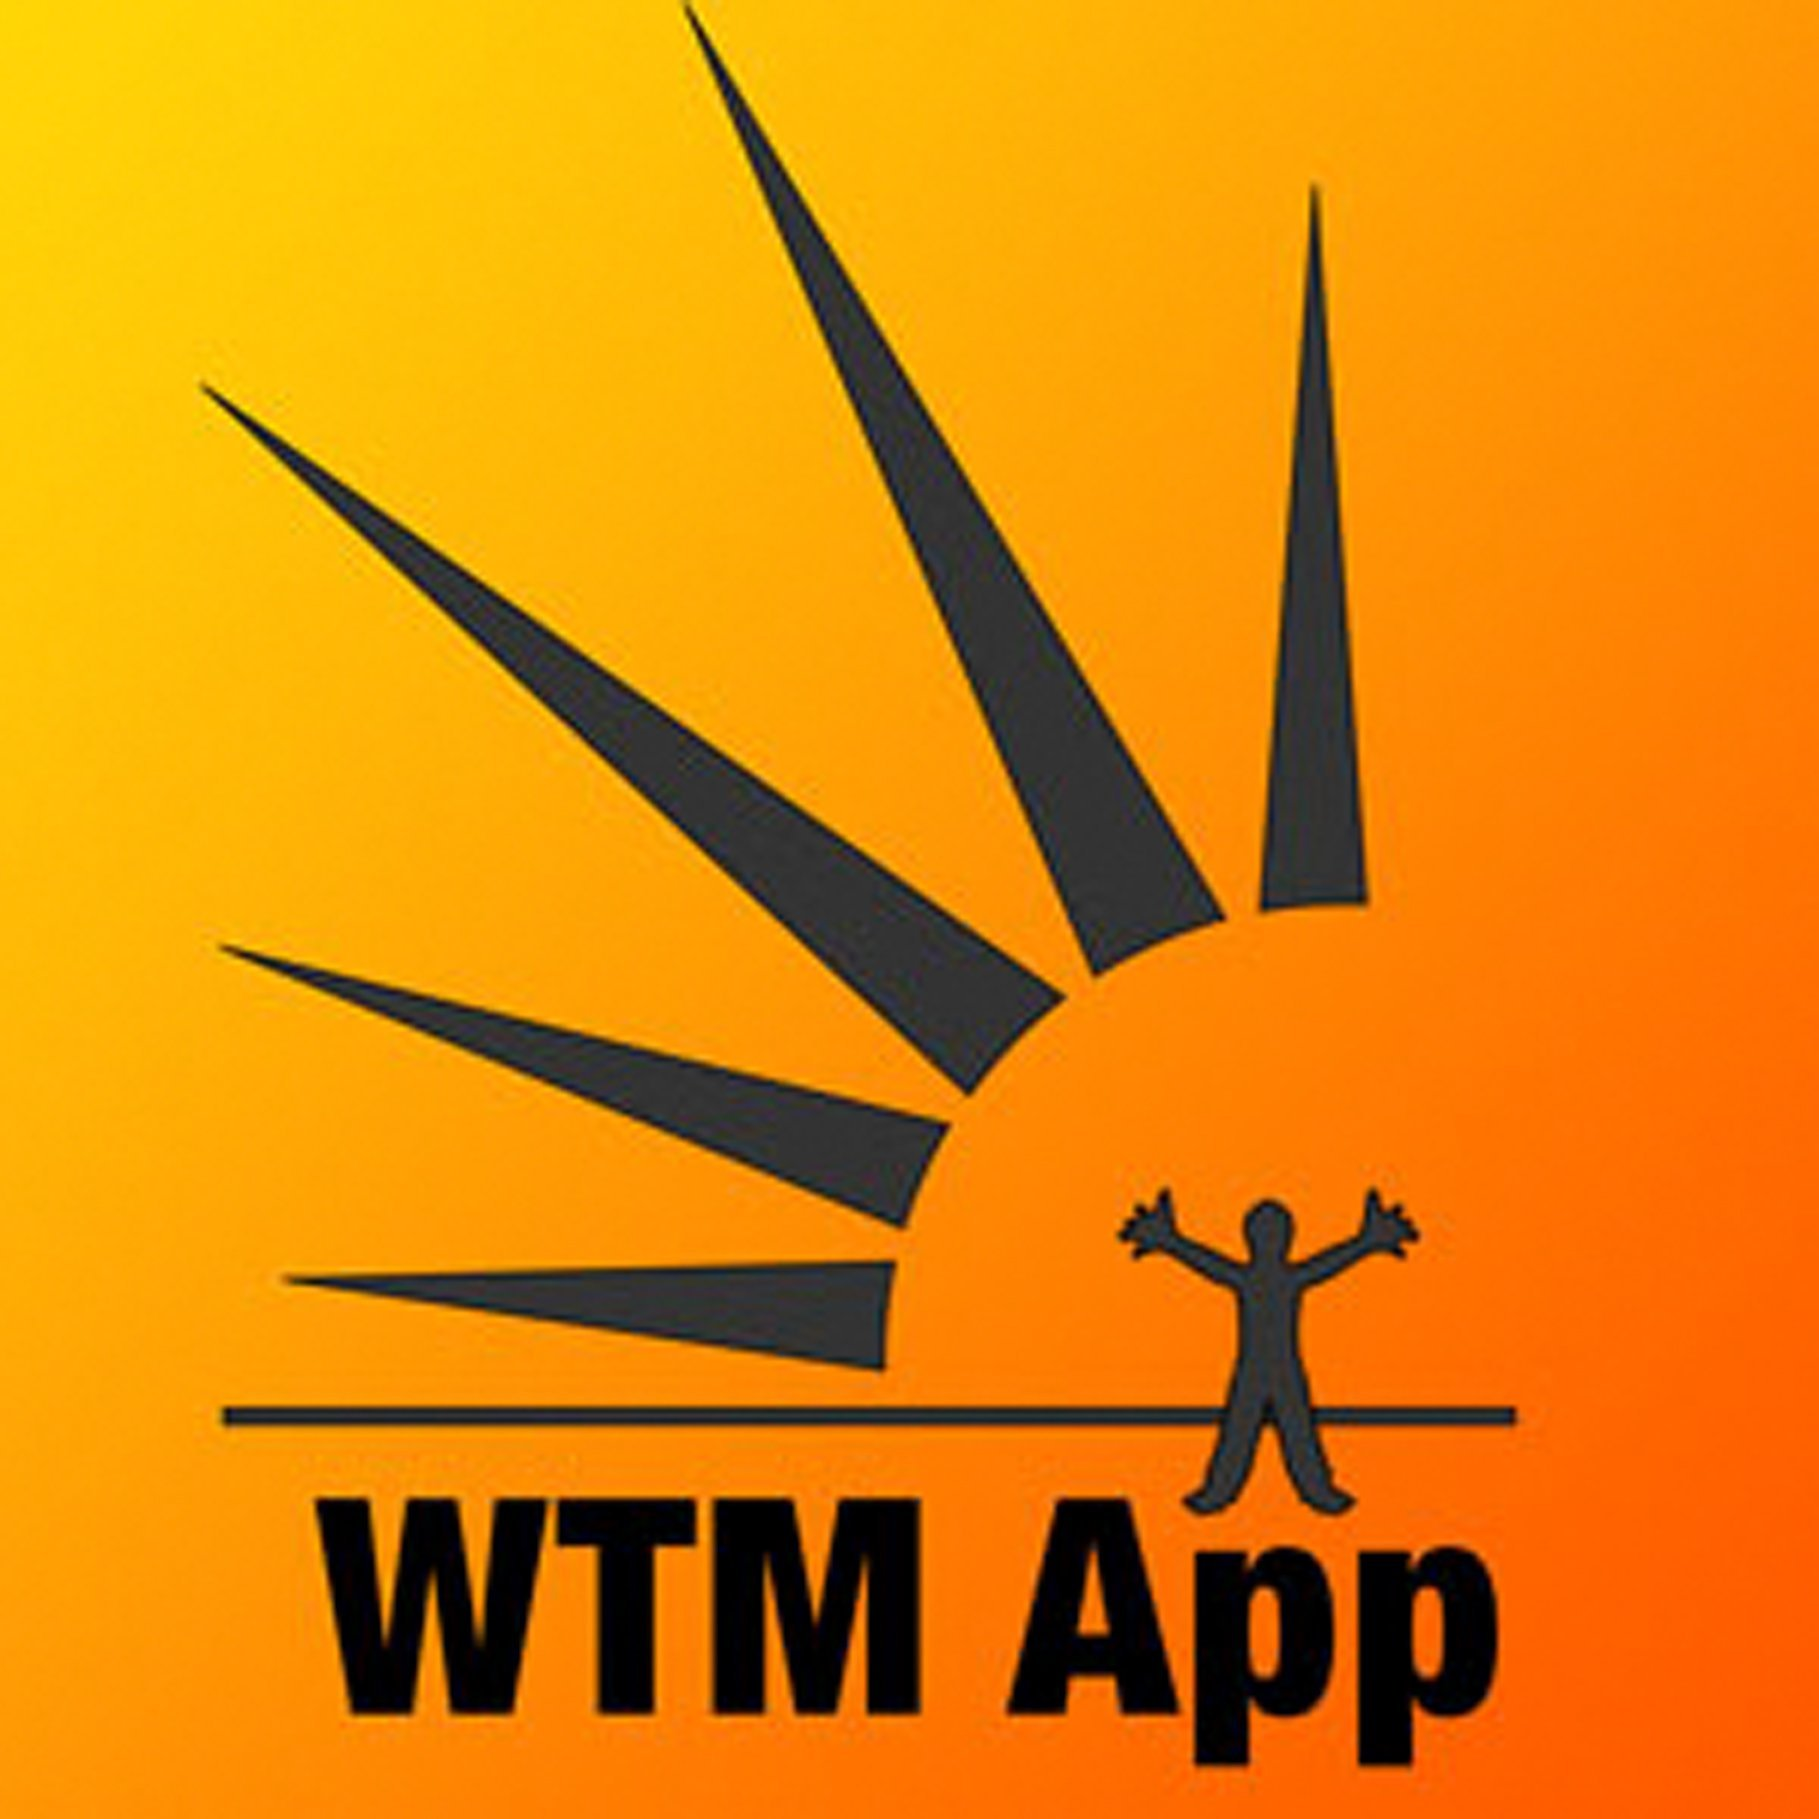 Person with arms outstretched in front of sun and text reading WTM App.